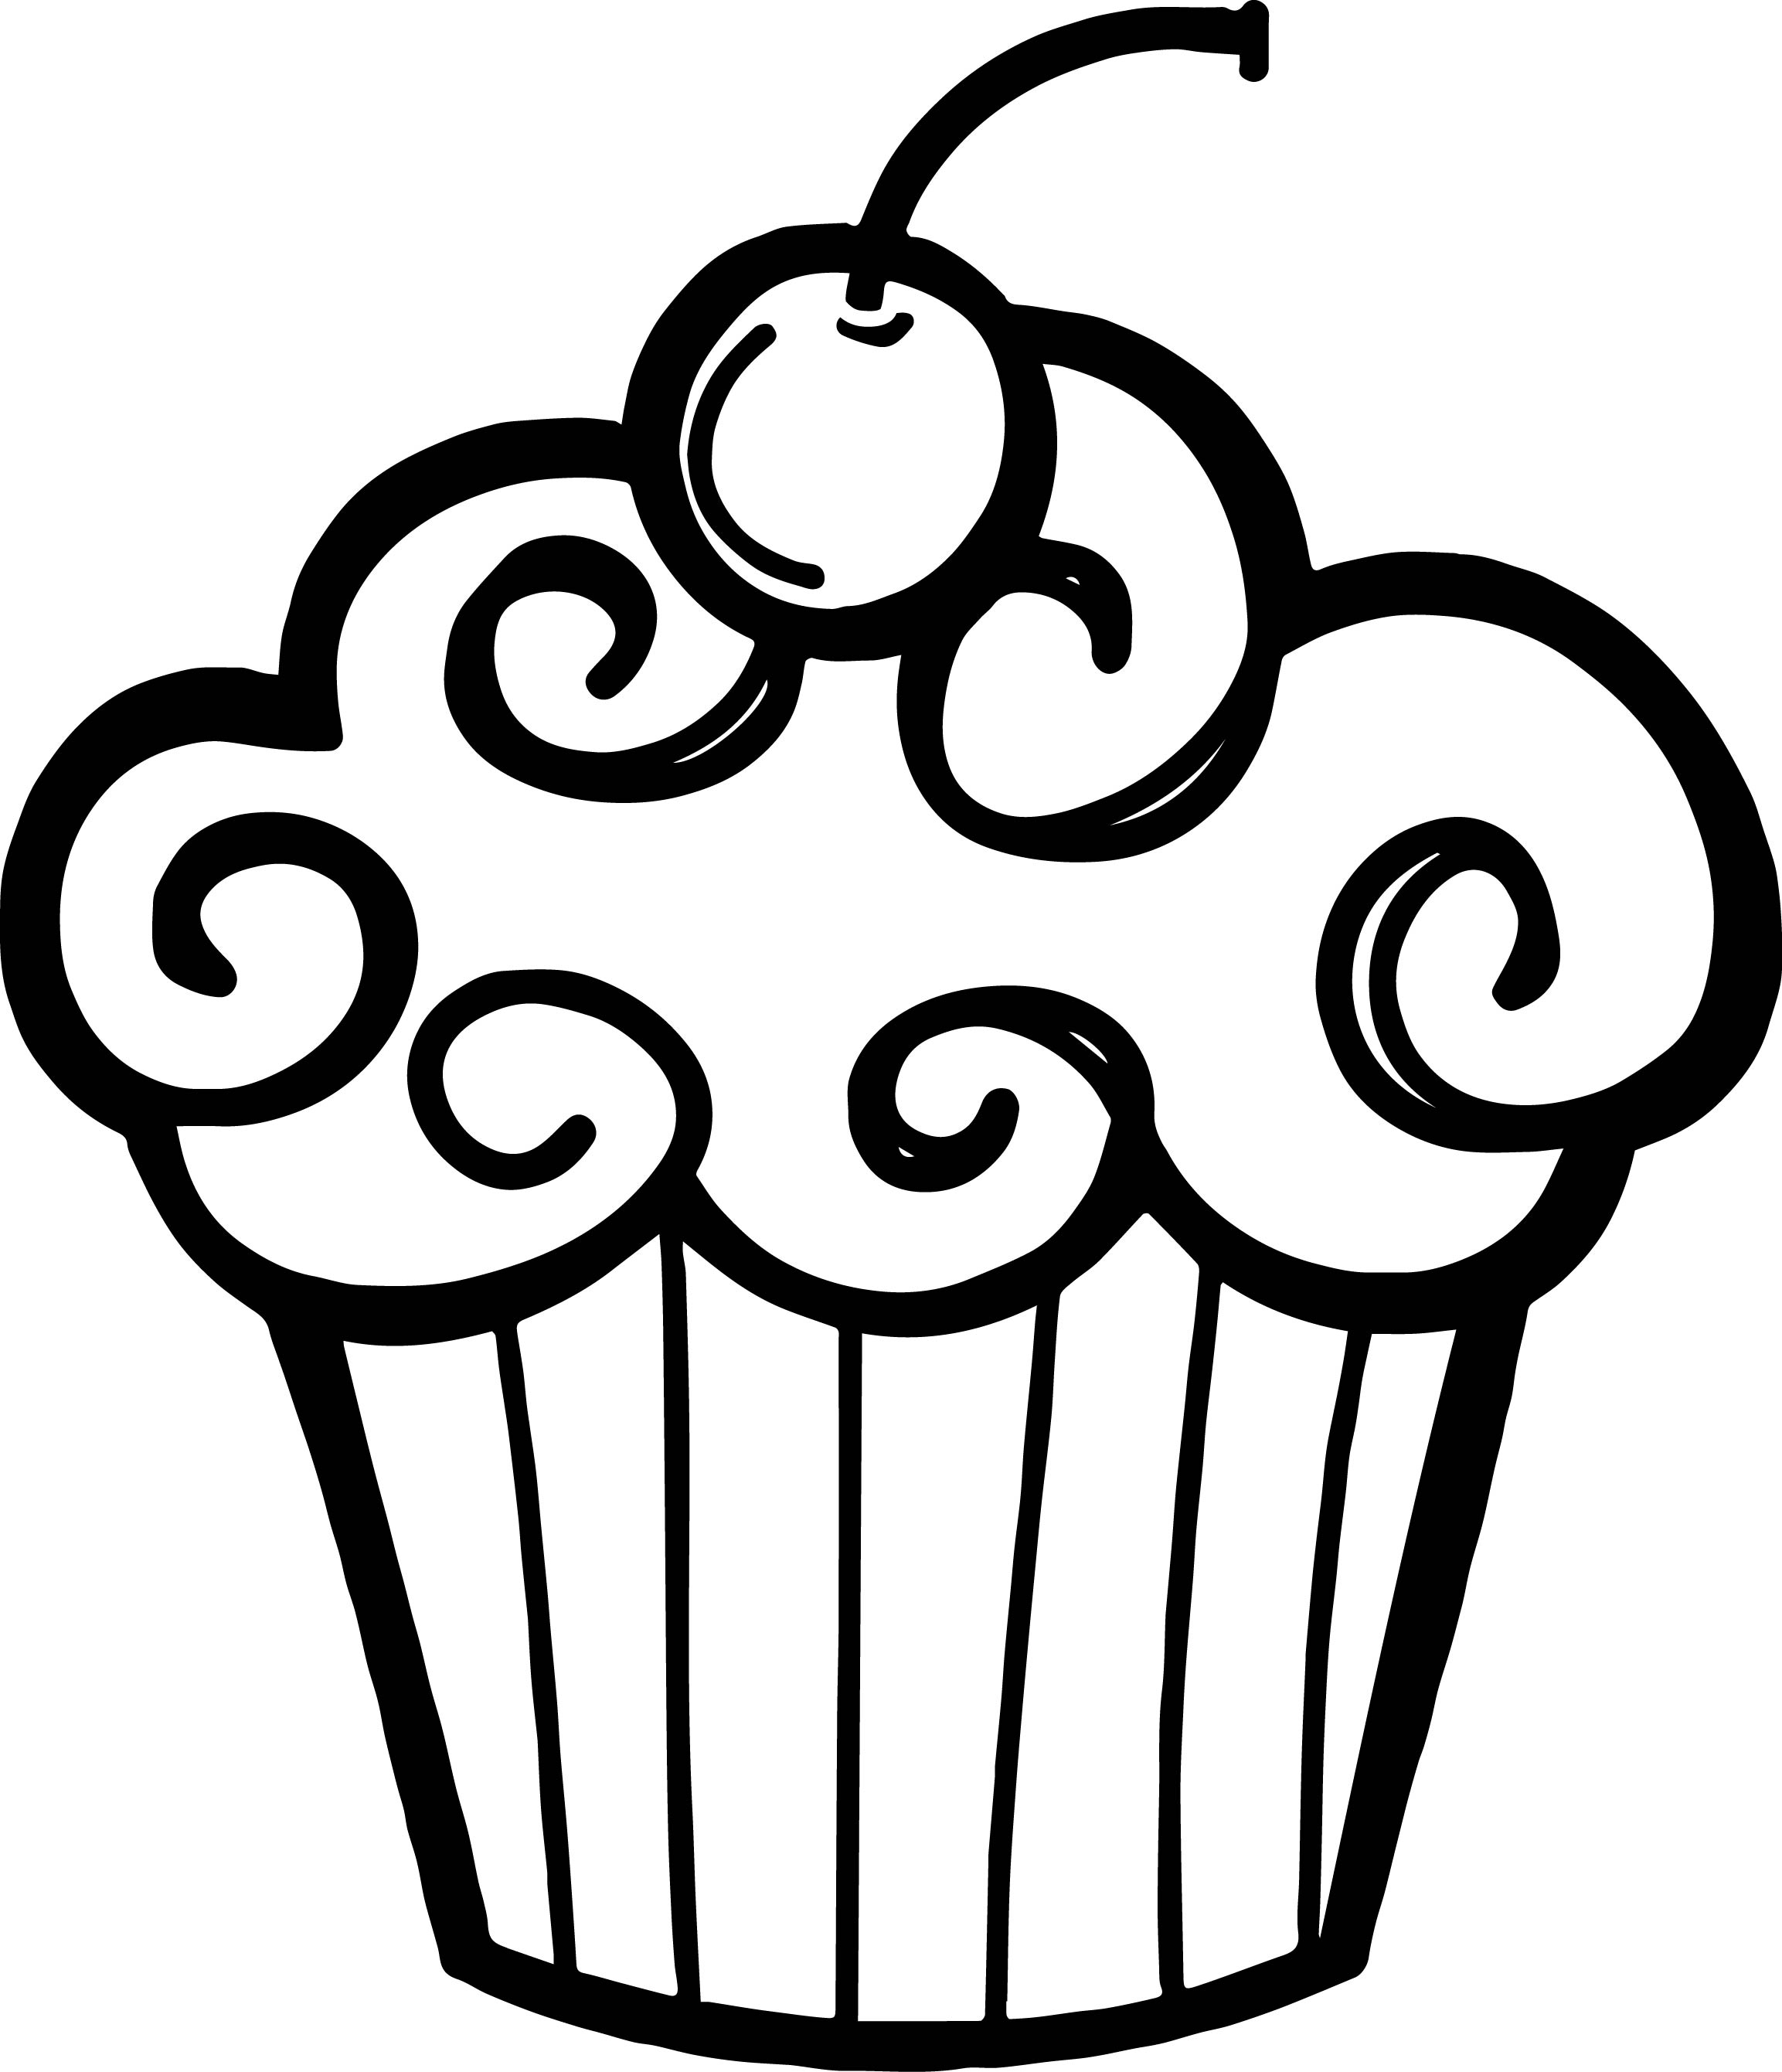 2306x2681 Vanilla Cupcake Clipart Black And White